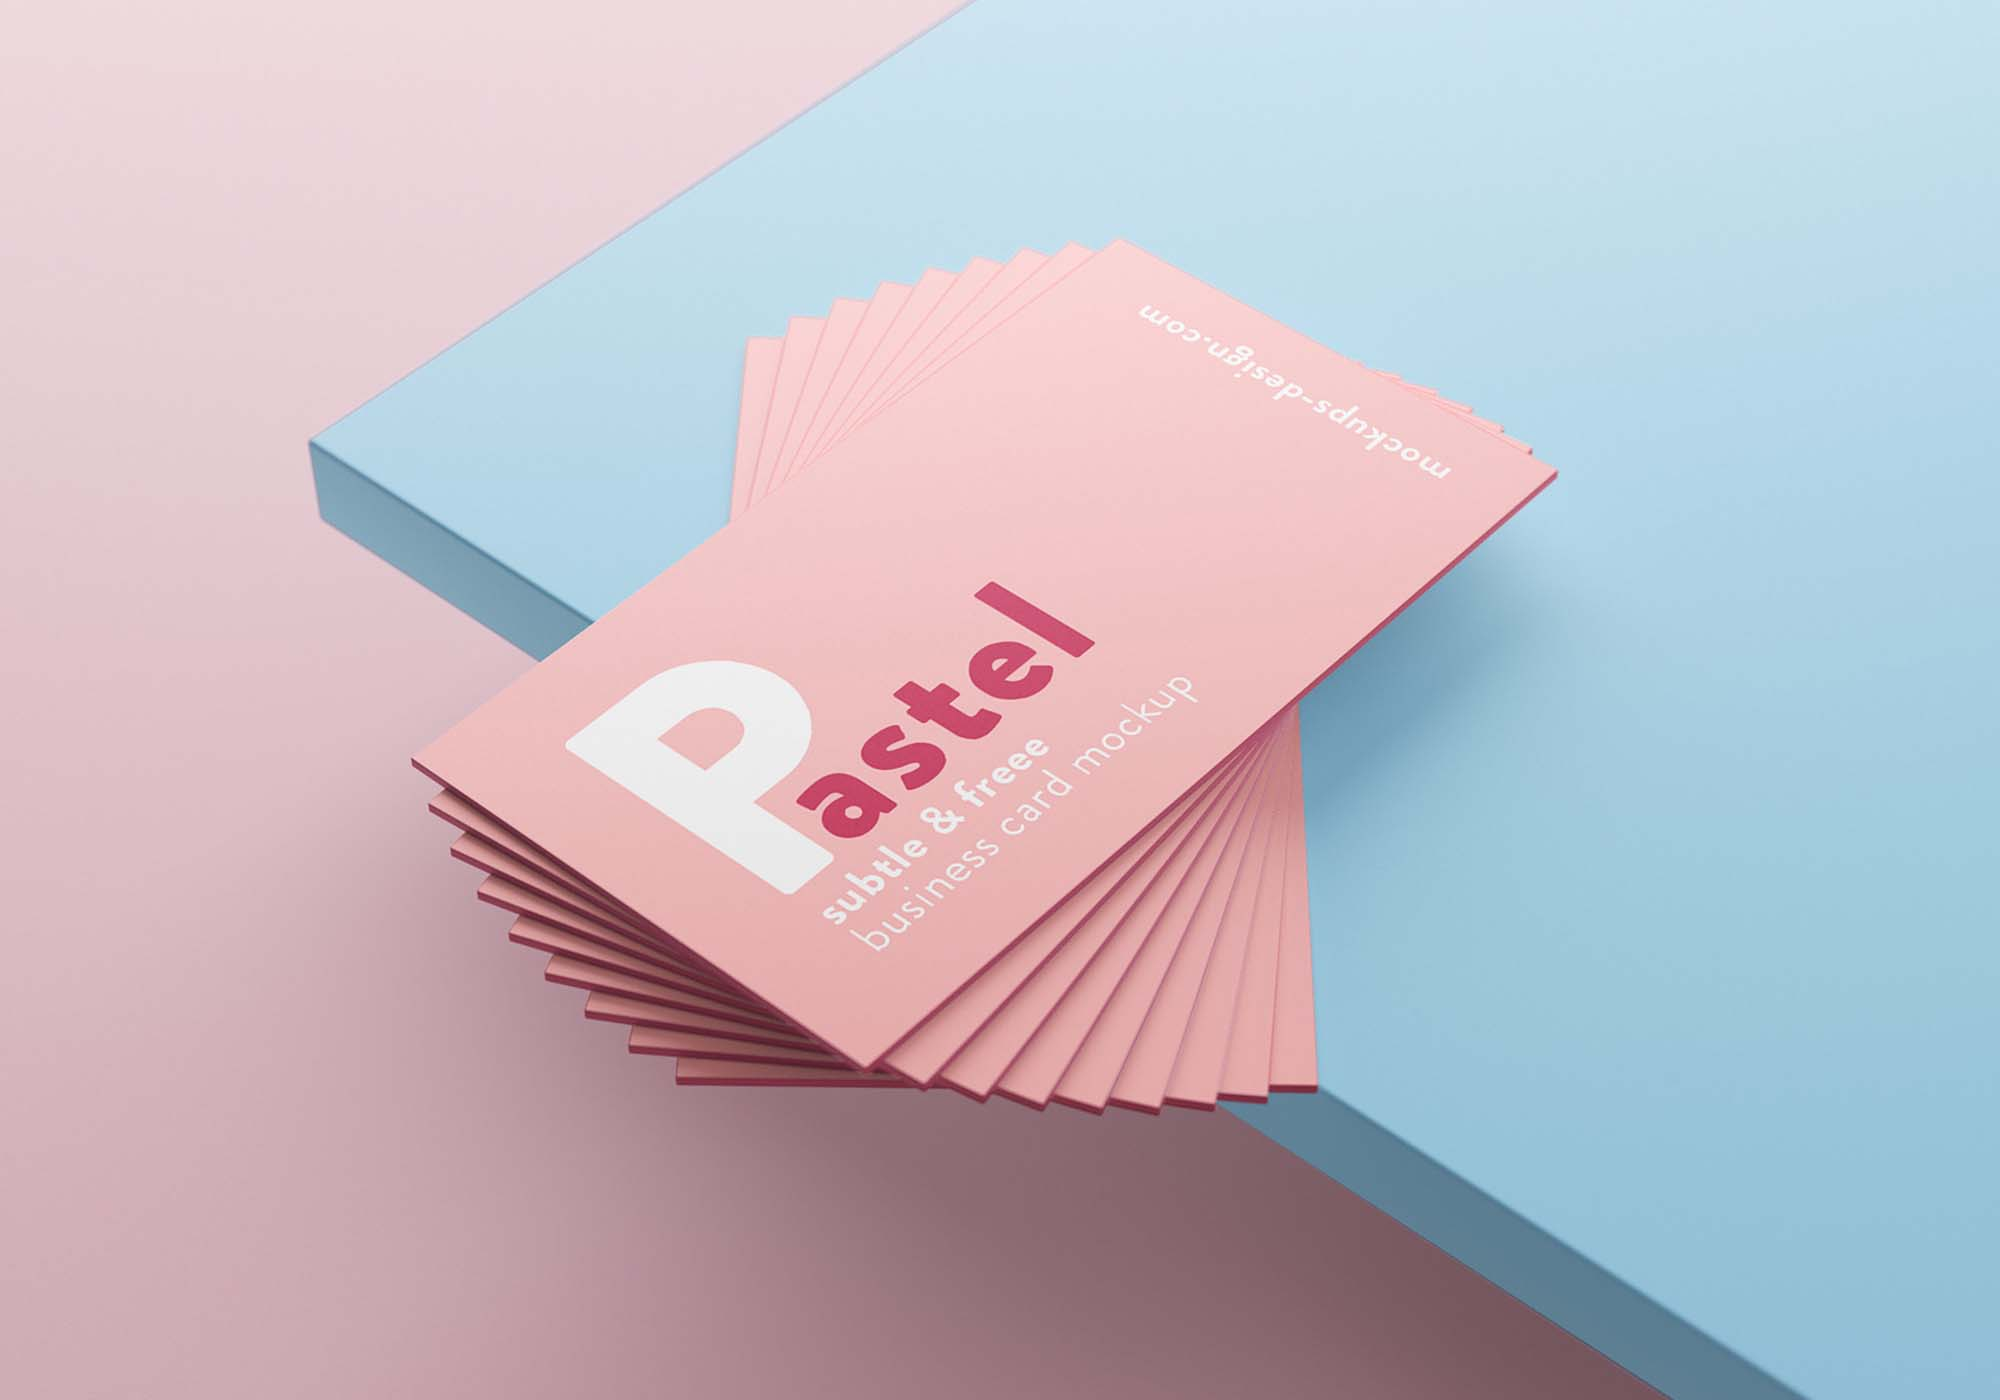 Stacks of Business Cards Mockup